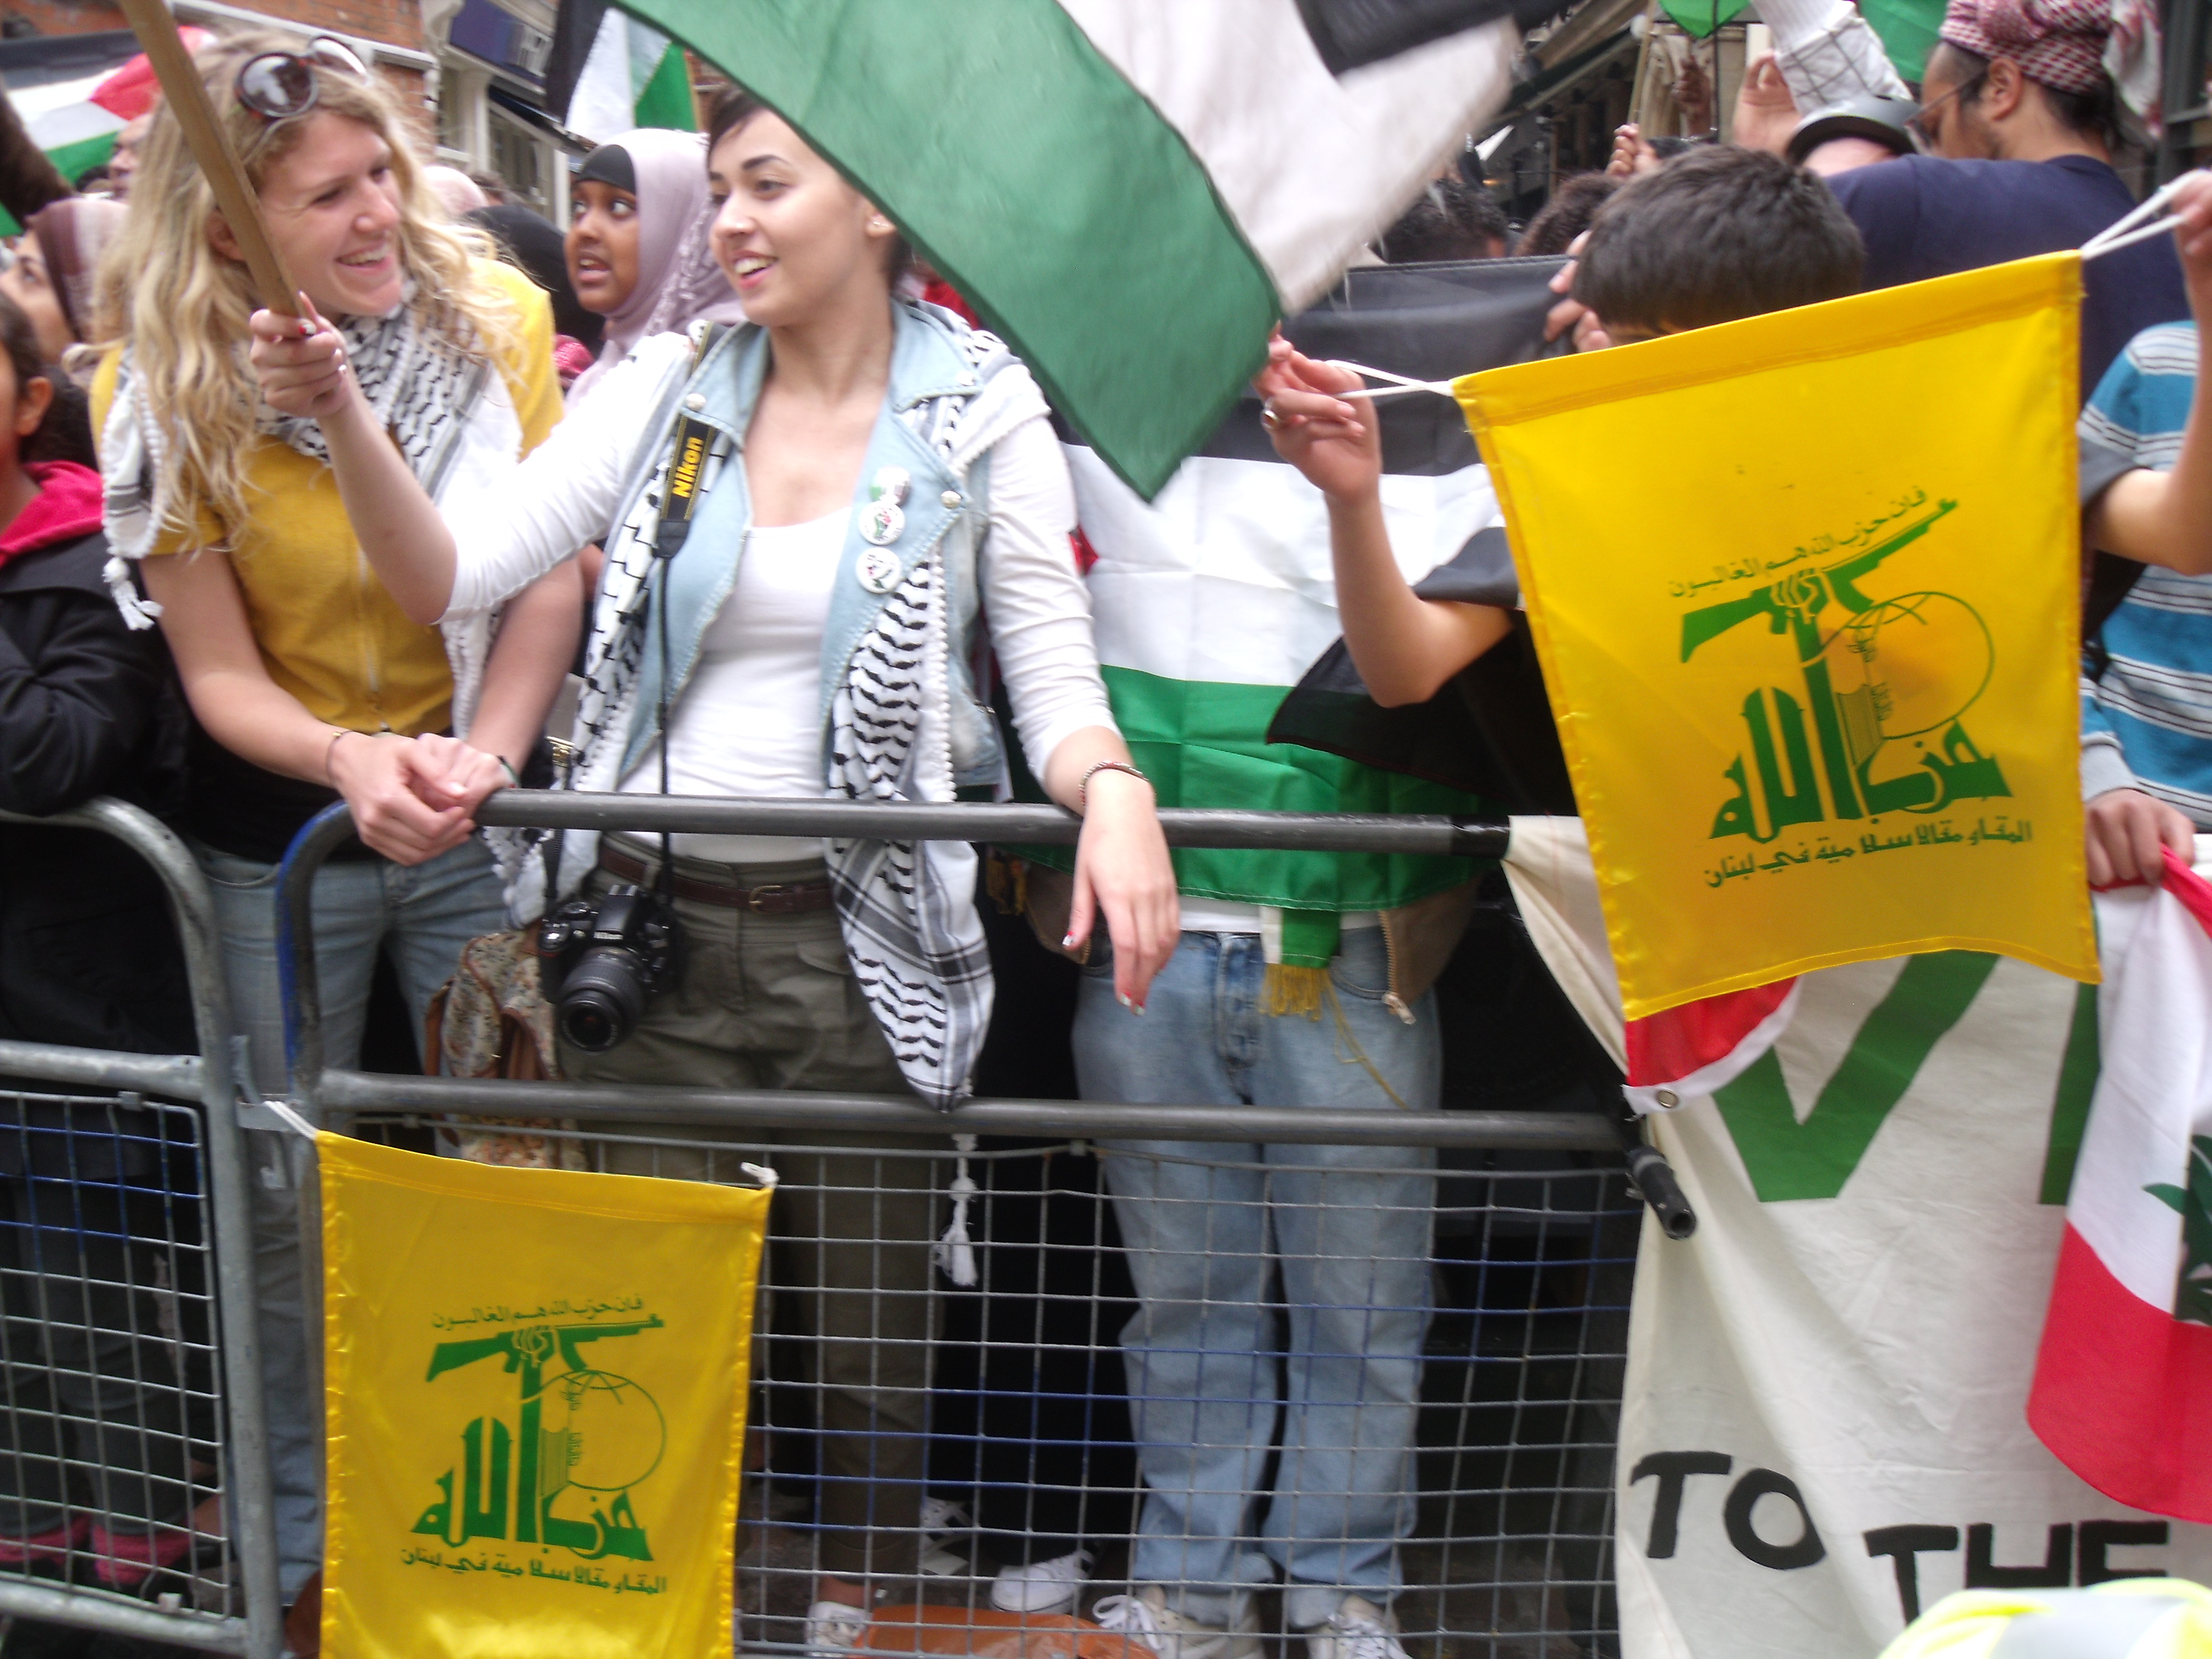 Pack of 4 quot x 6 quot sudan sudanese desktop table flags with gold bases - Hezbollah Flag With Gun On Streets Of London